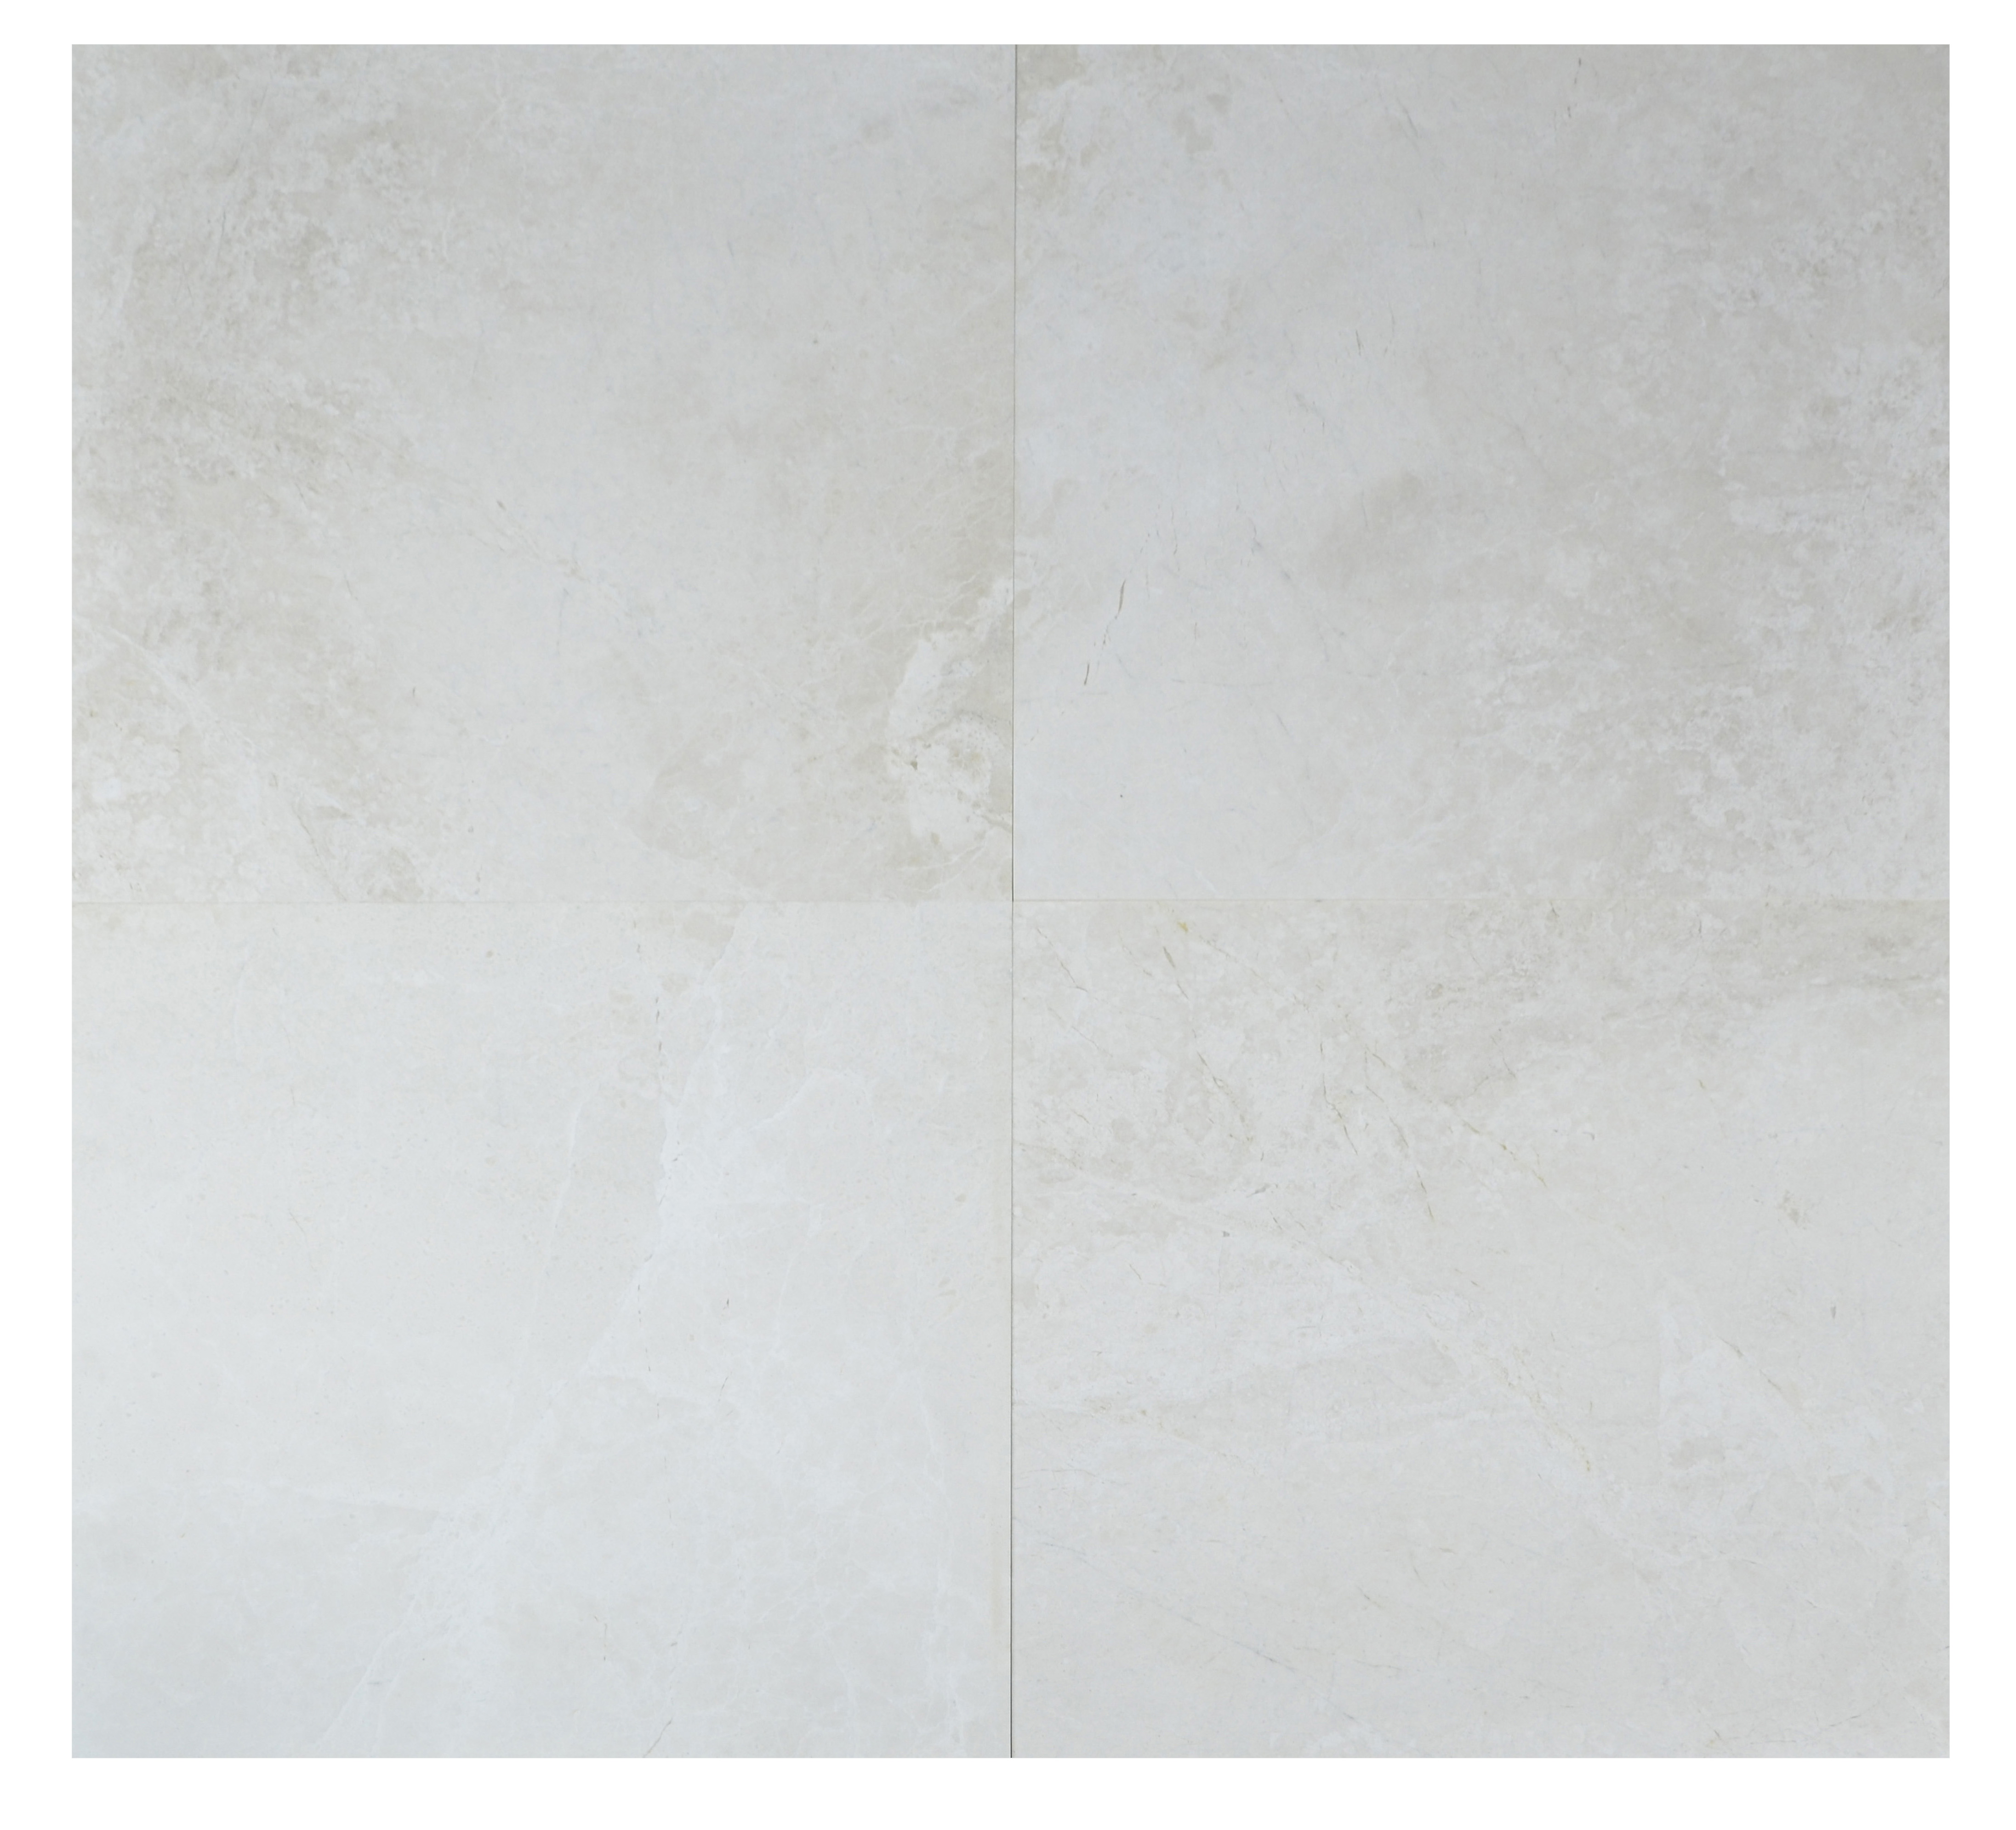 White Marble Floor Tiles Sale Image collections - Tile Flooring ...